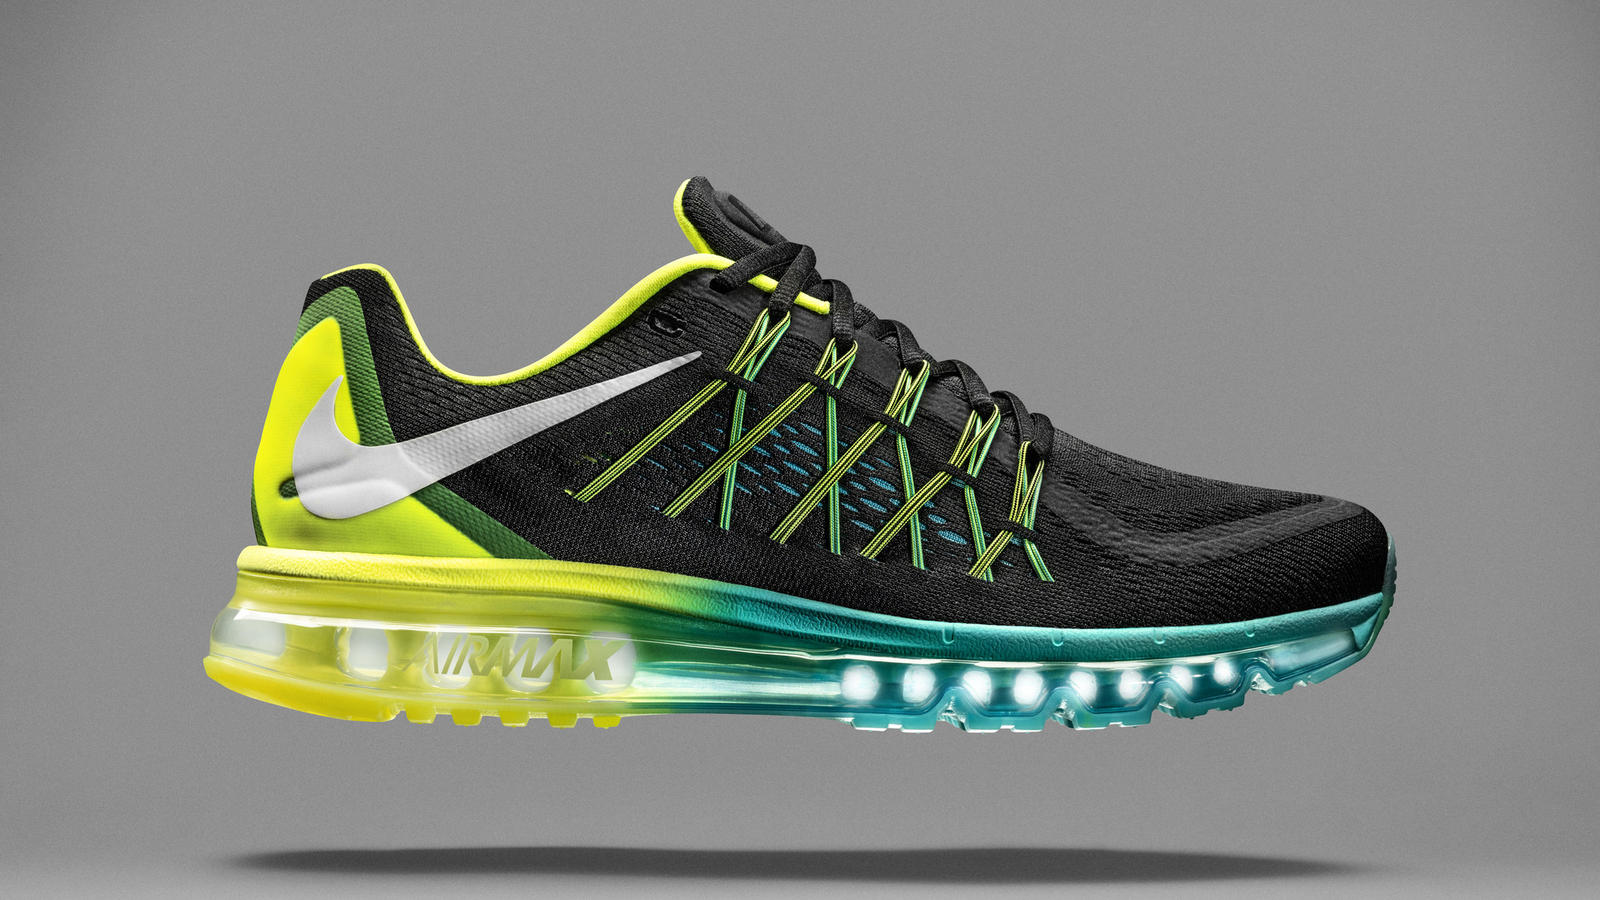 4e17cdc198d4 Nike Air Max 2015  Ultra-Soft Cushioning